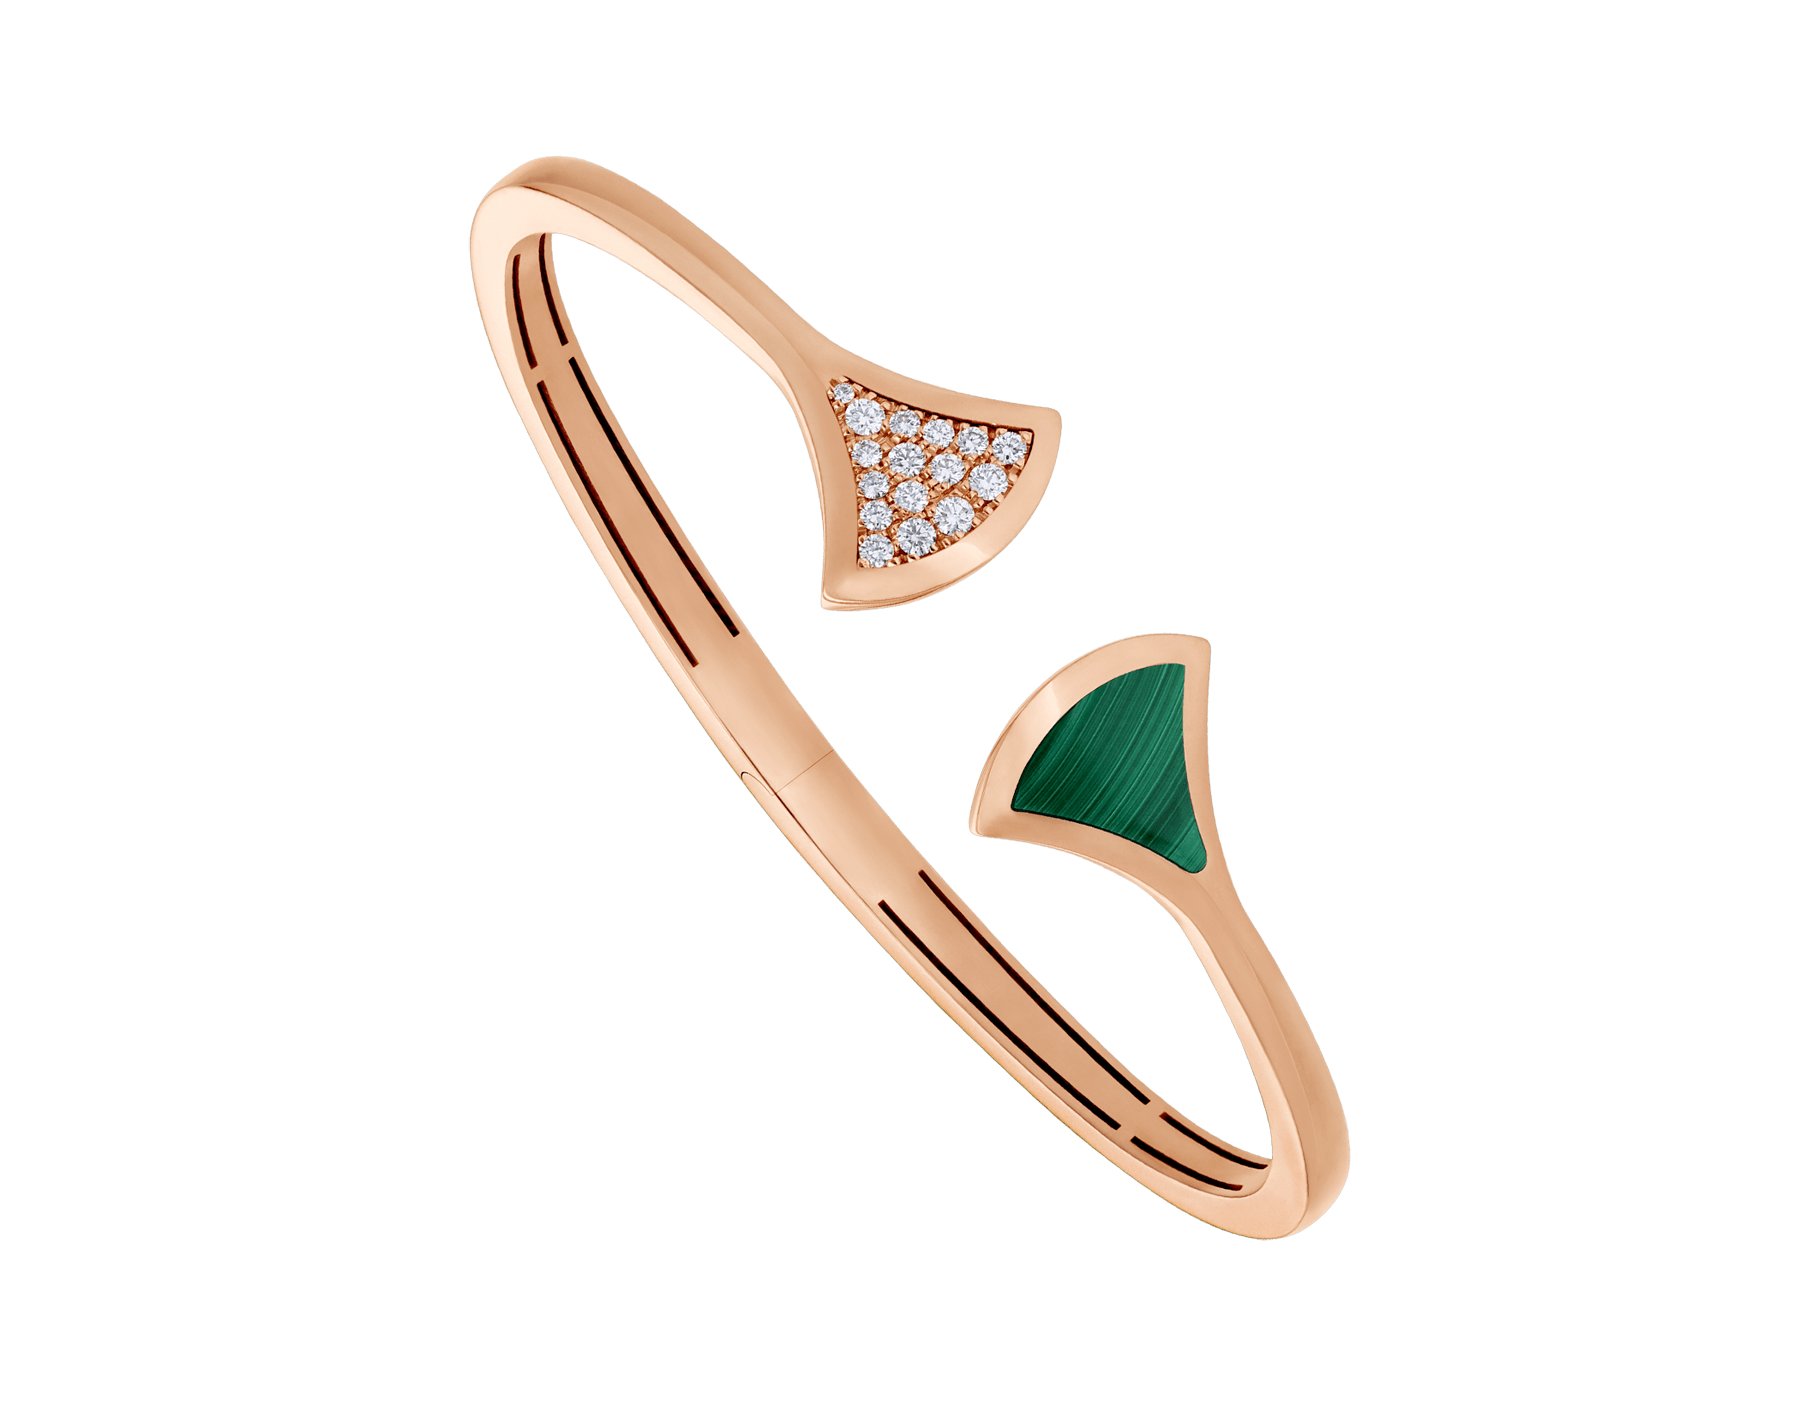 DIVAS' DREAM 18 kt rose gold bangle bracelet set with malachite element and pavé diamonds (0.16 ct) BR858679 image 1